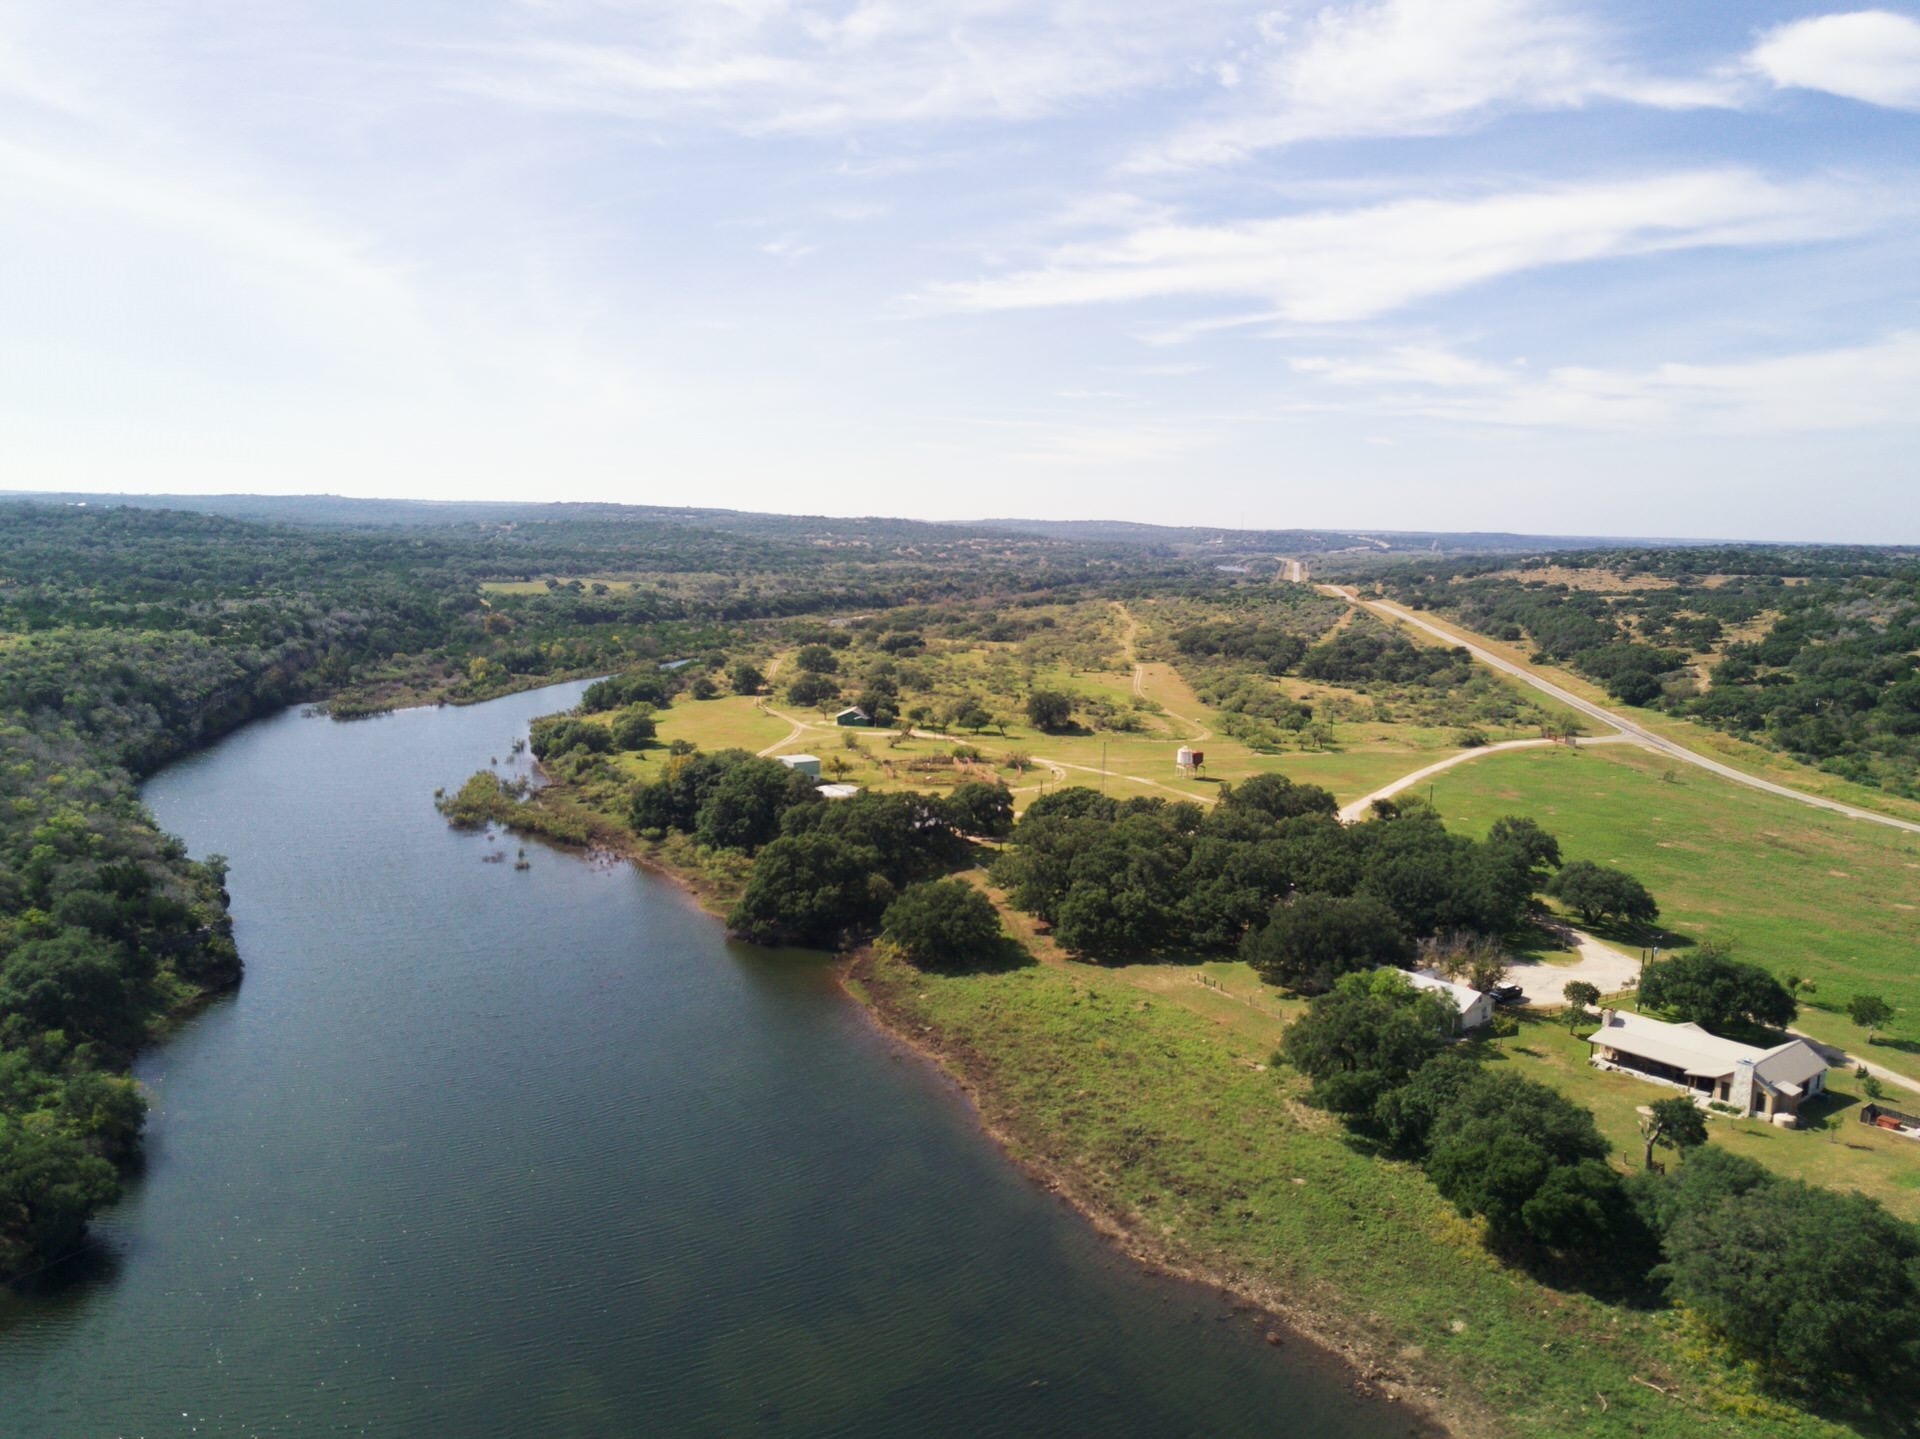 Aerial of Llano Springs Ranch